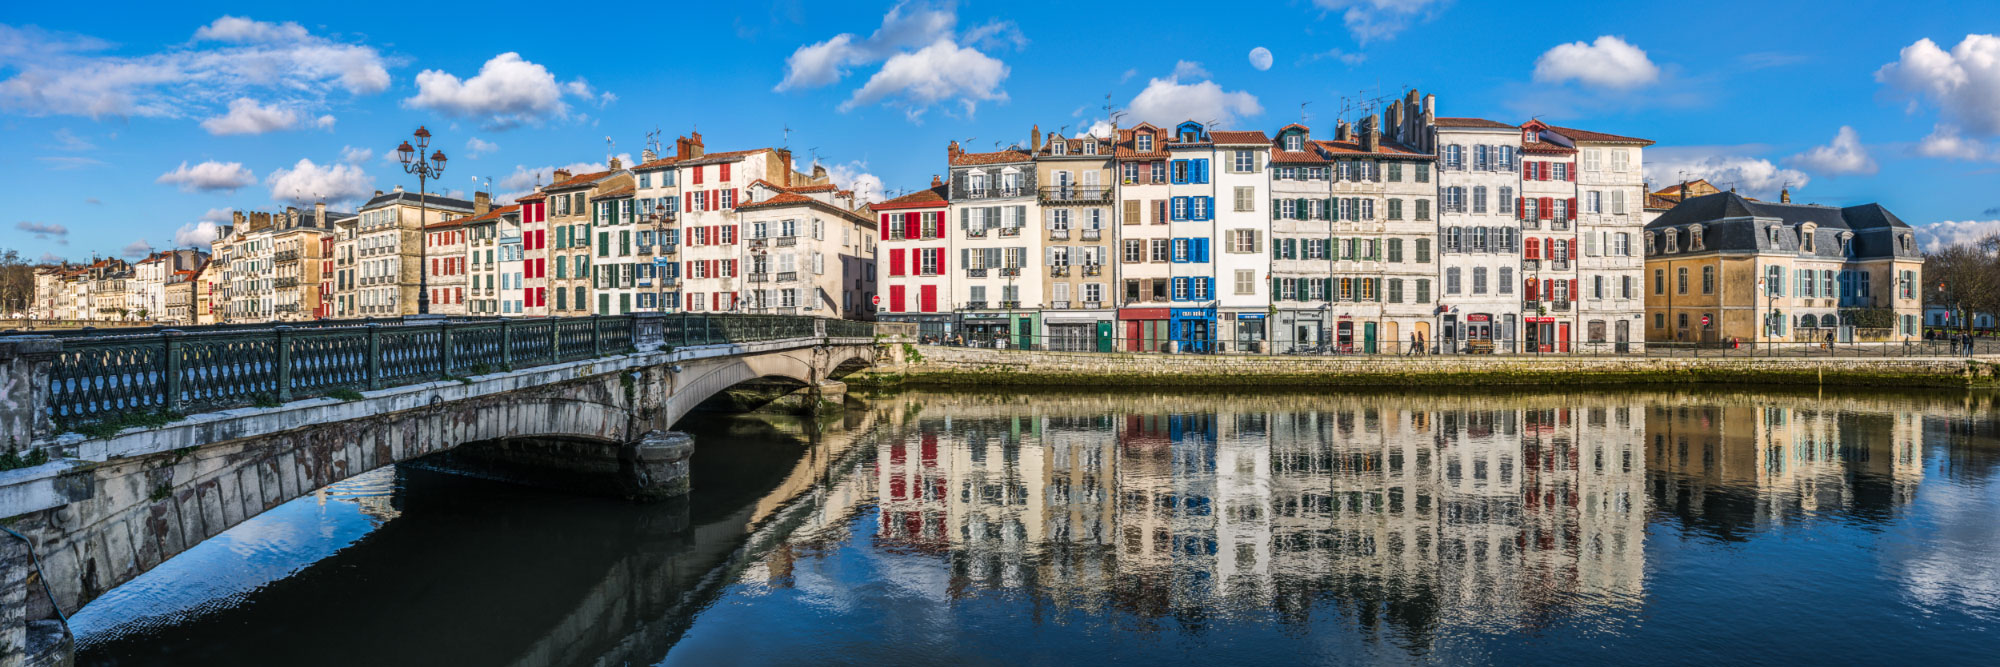 Les bords de la Nive, Bayonne